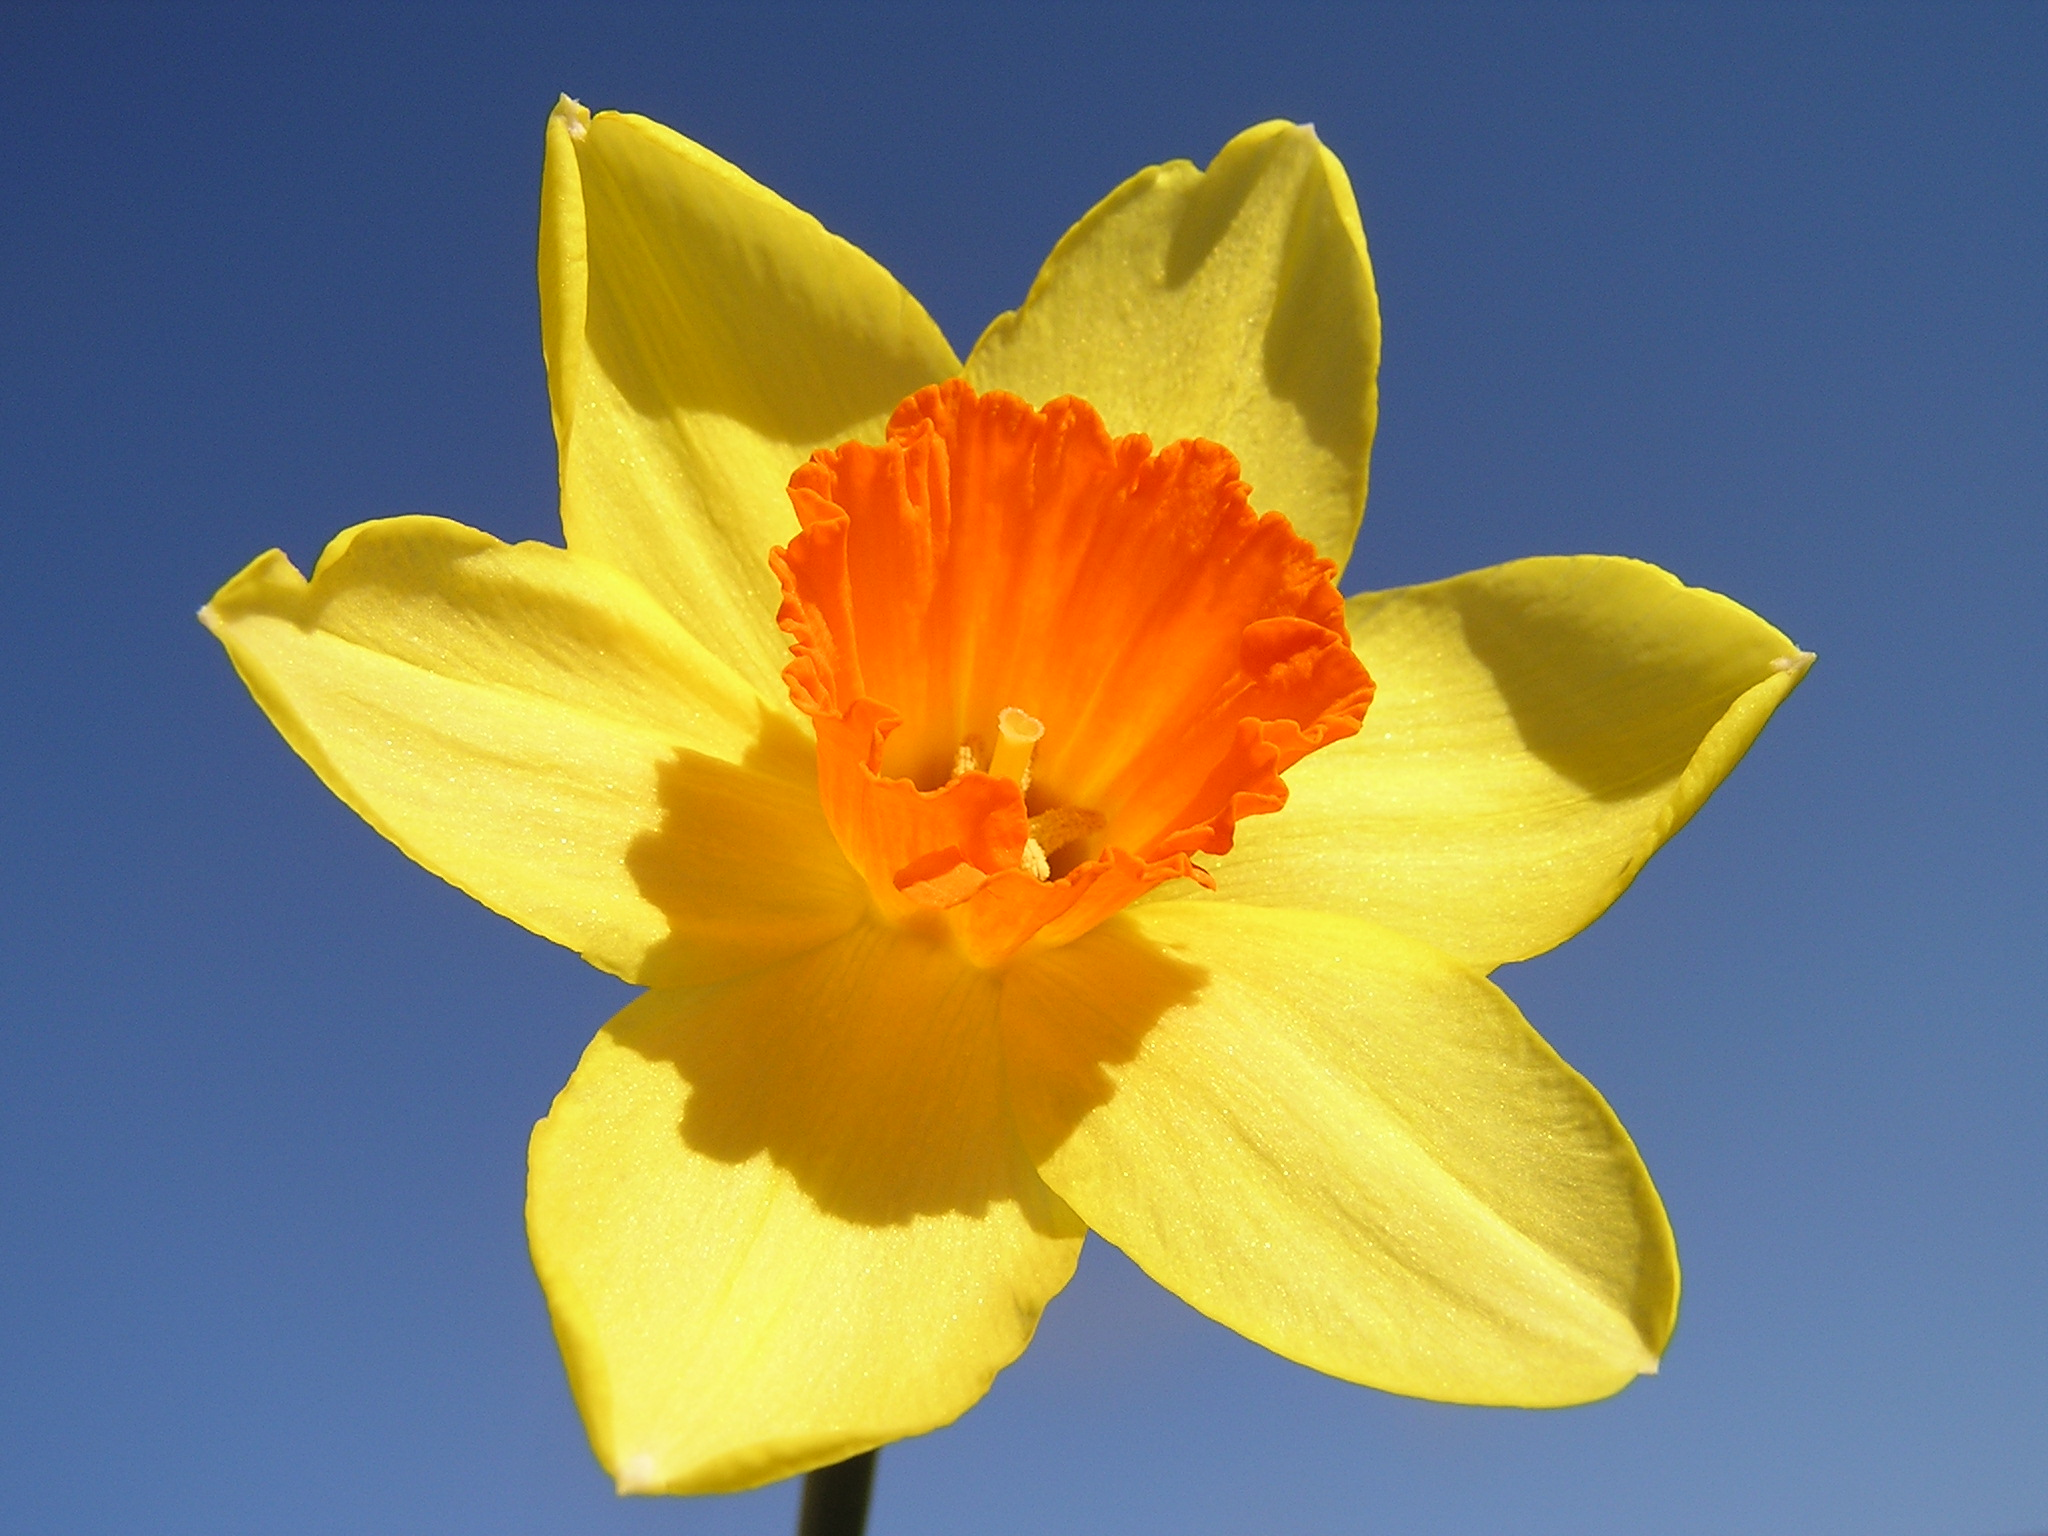 Flowersgold lessons tes teach narcissus plant wikipedia the free encyclopedia buycottarizona